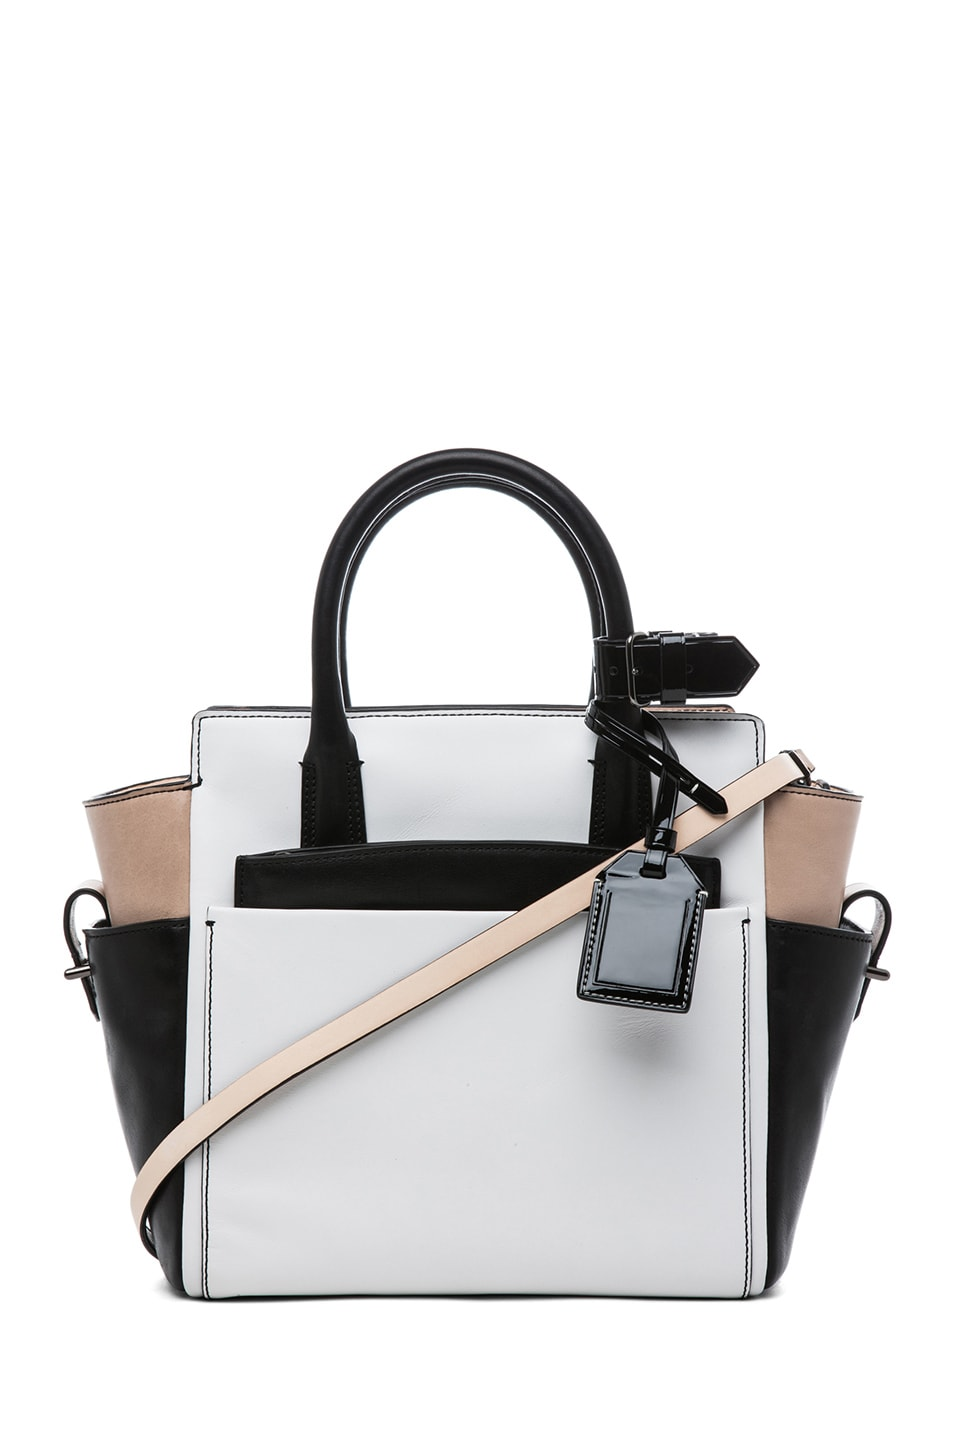 Image 1 of Reed Krakoff Patent Mini Atlantique in Nude Black